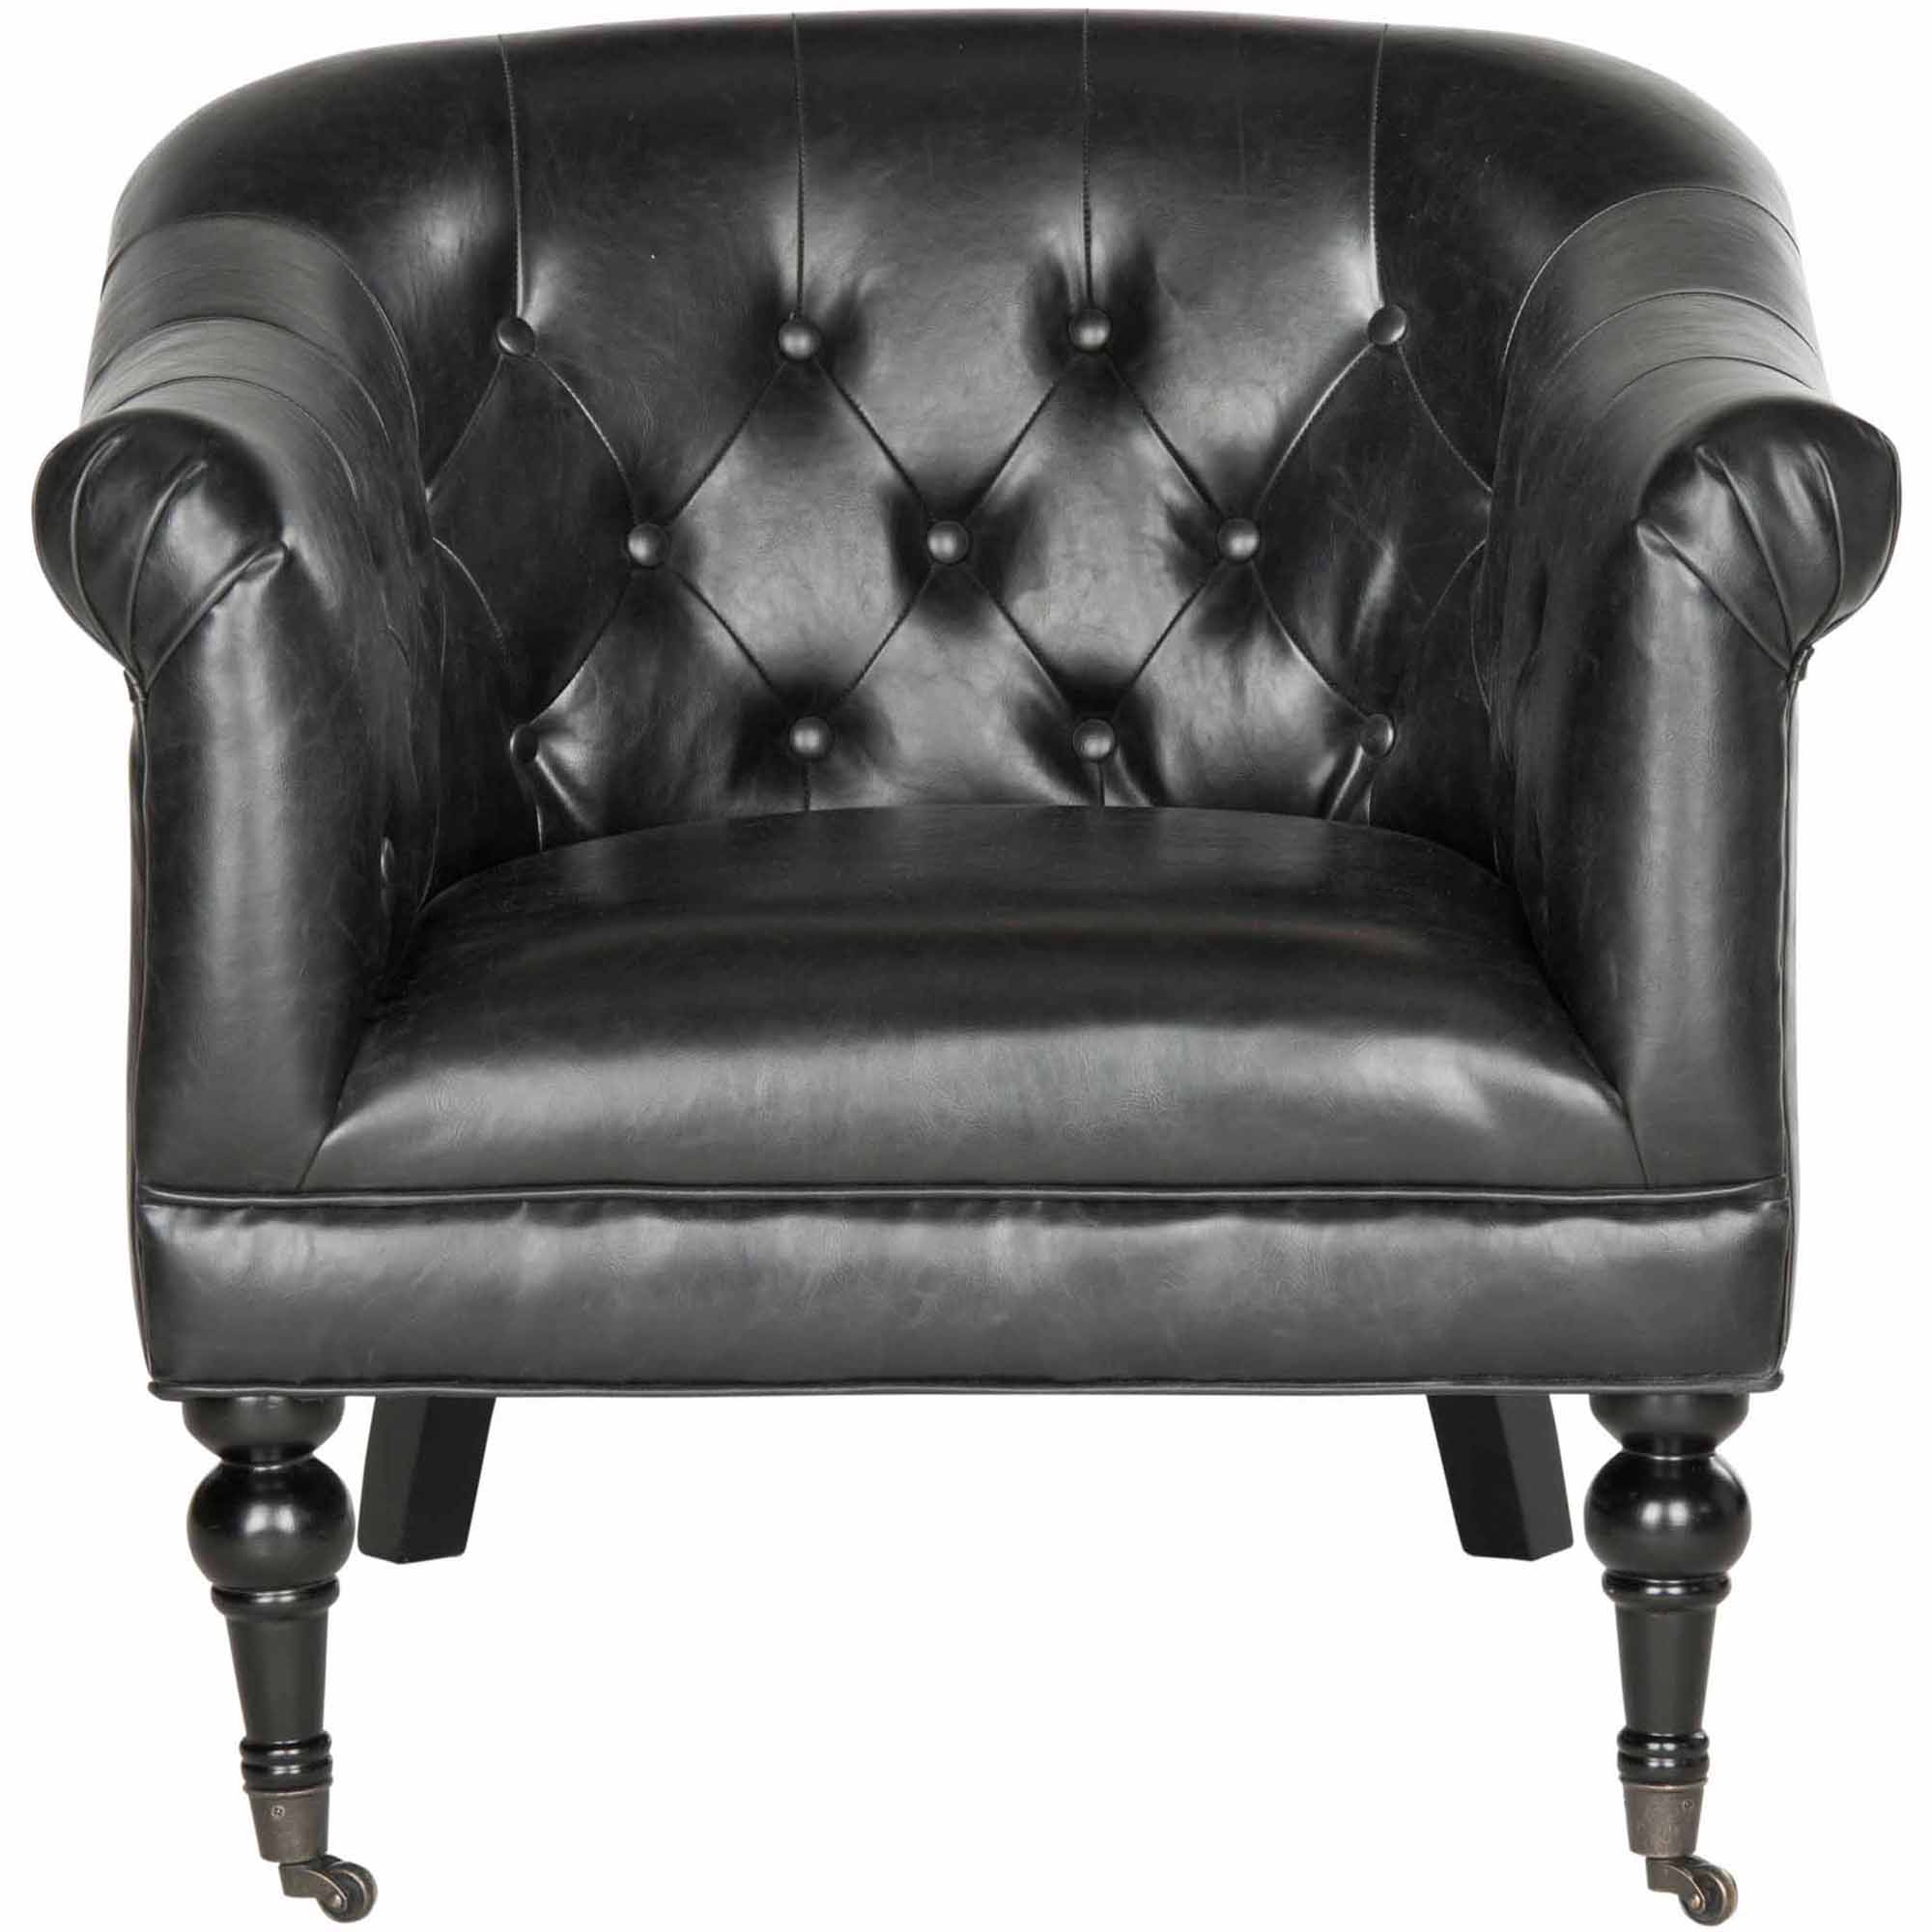 Safavieh Nicolas Bicast Leather Club Chair, Antique Black by Safaveih